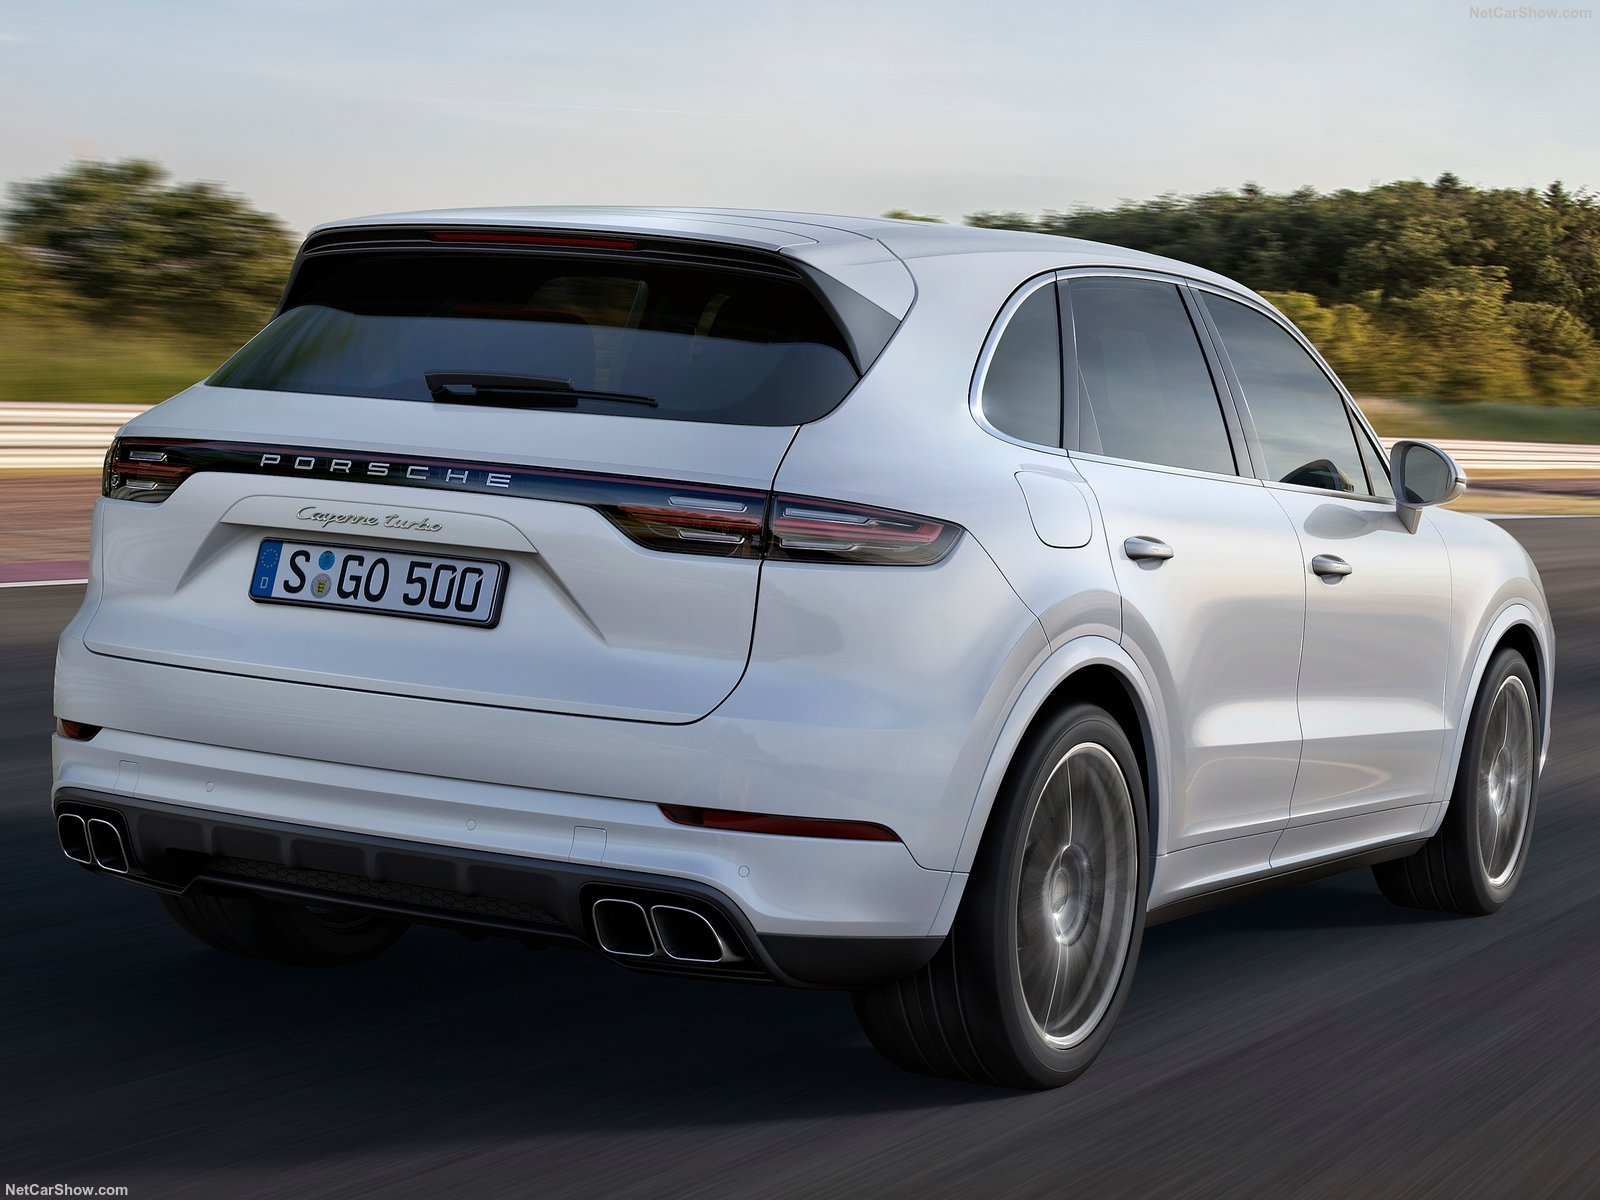 Porsche Cayenne Turbo photo 182893